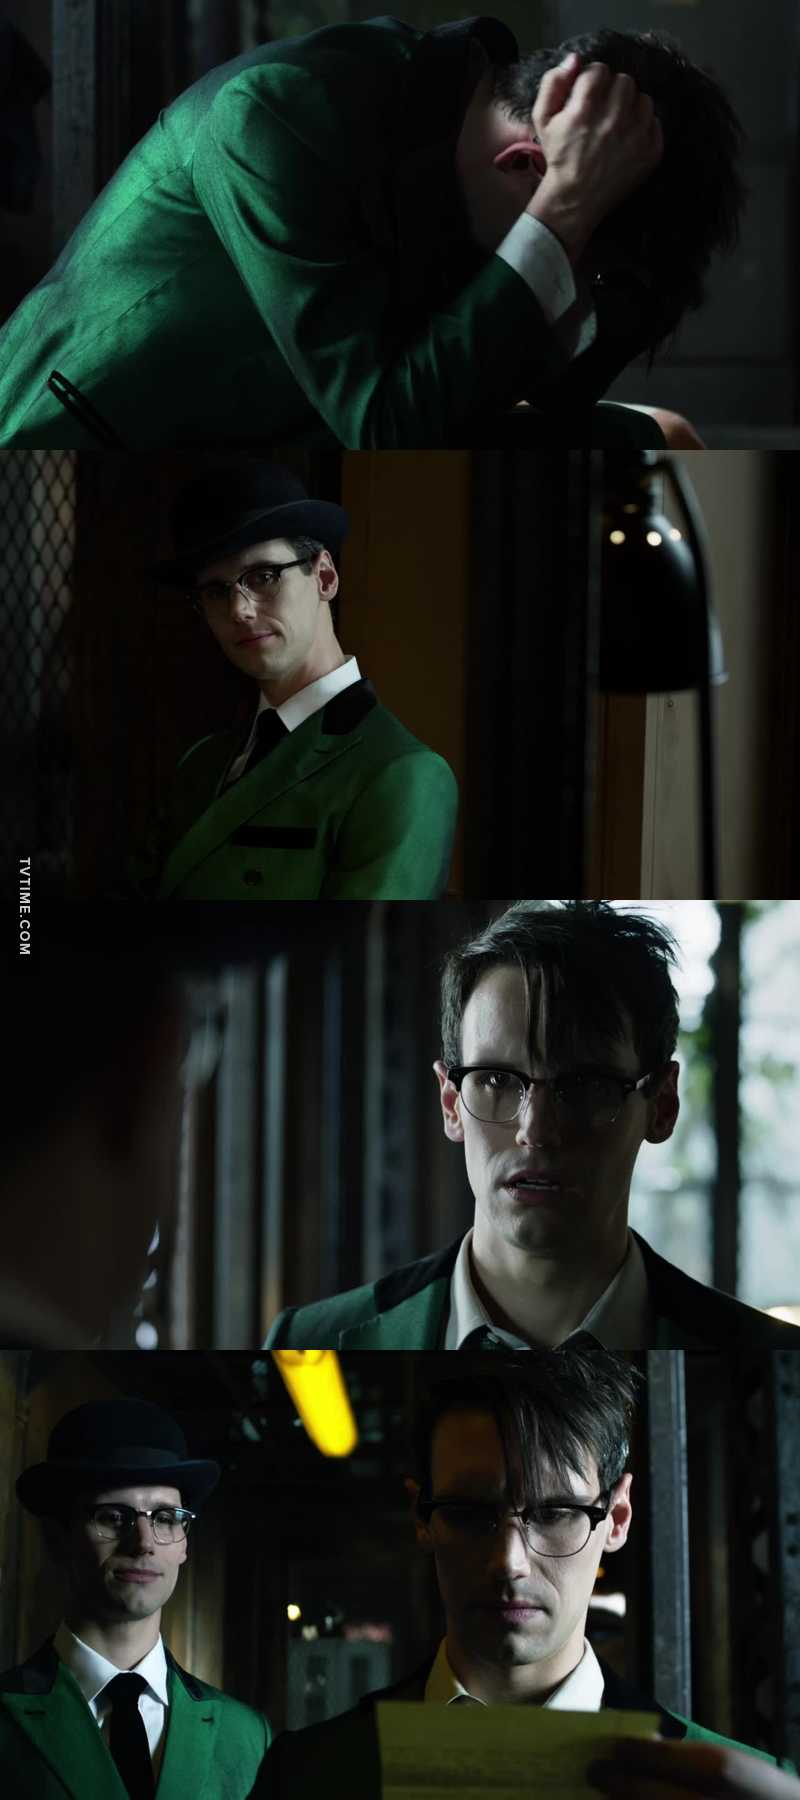 We should have two buttons : Edward and The Riddler. This episode was just crazy, Cory is such a good actor 💚